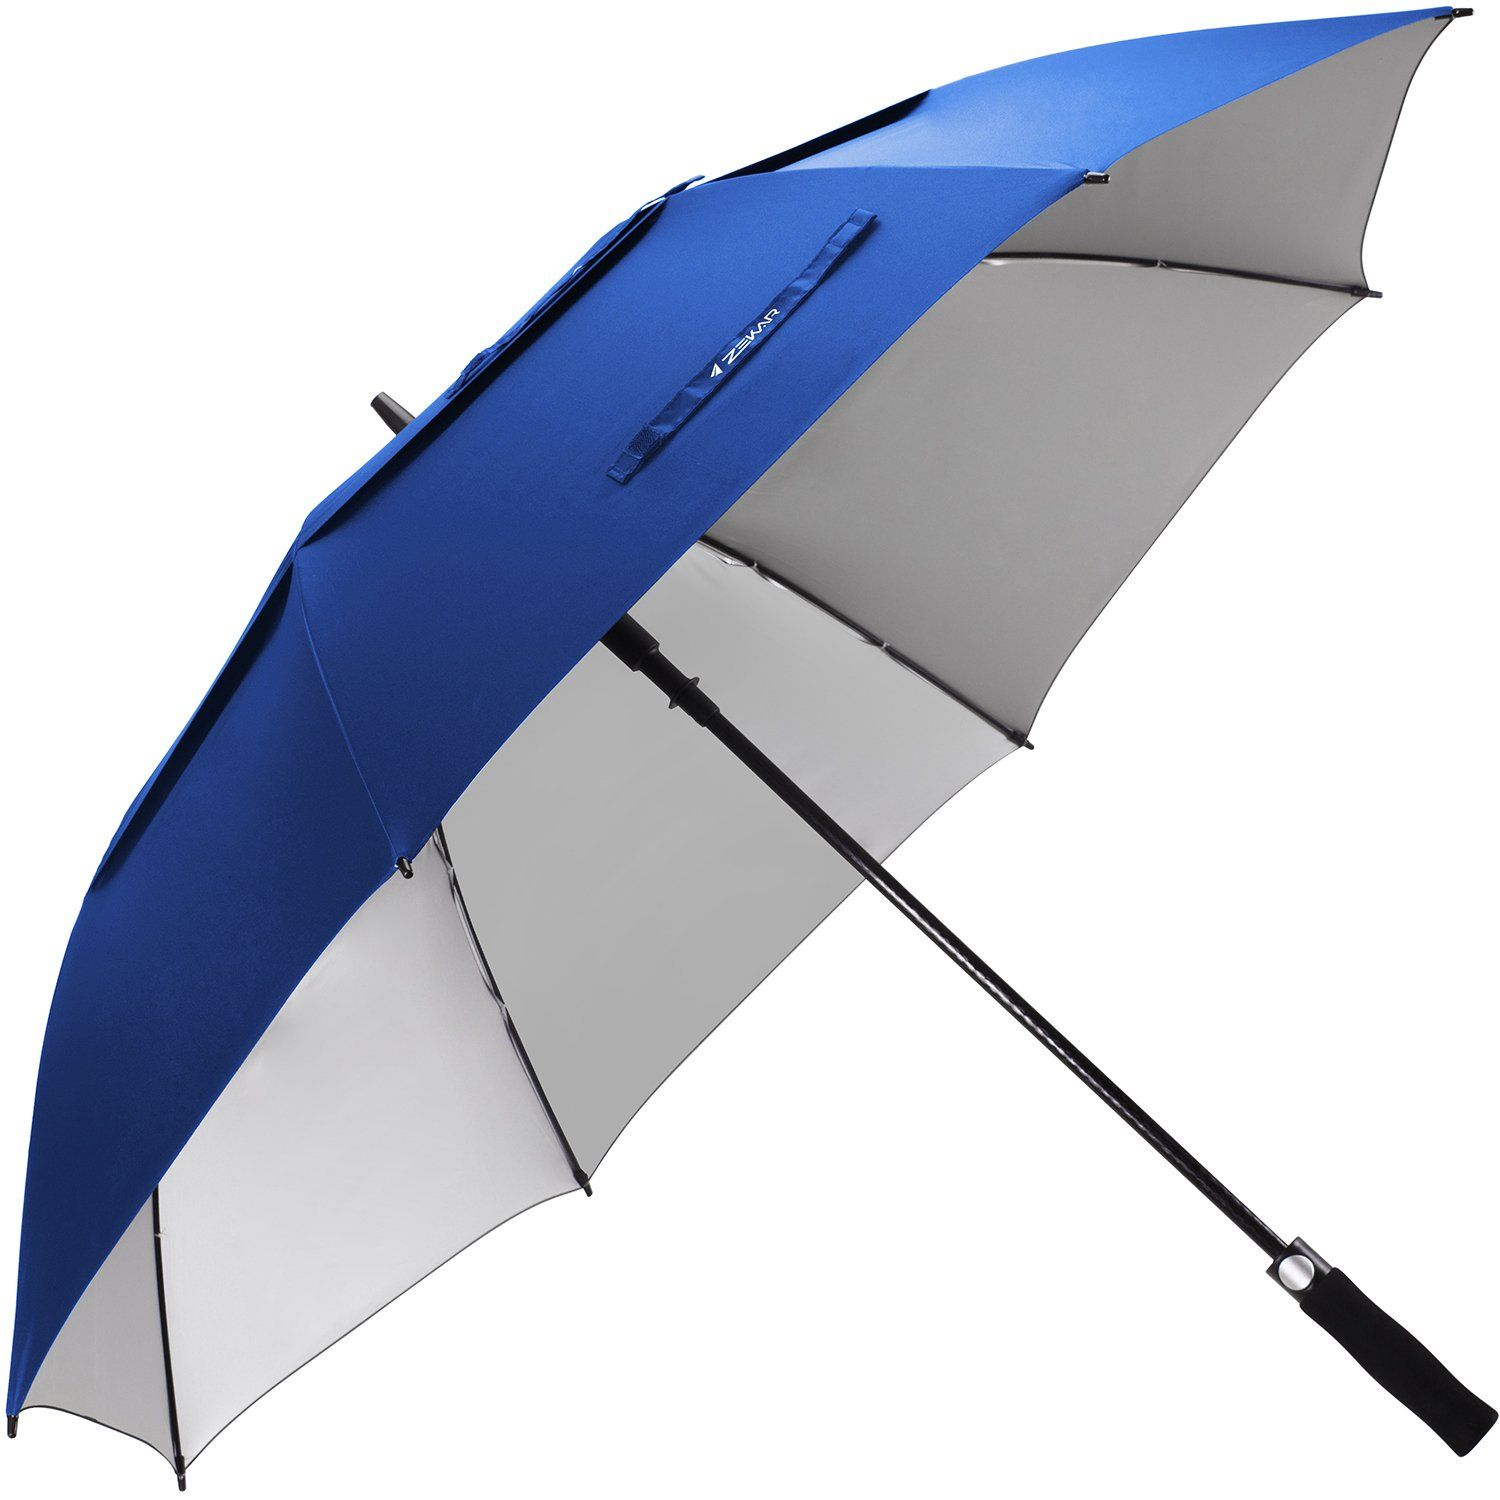 ZEKAR 62 / 68 Inch Windproof Large Golf Umbrella Vented Double Canopy and Automatic Open  sc 1 st  Pinterest & ZEKAR 62 / 68 Inch Windproof Large Golf Umbrella Vented Double ...